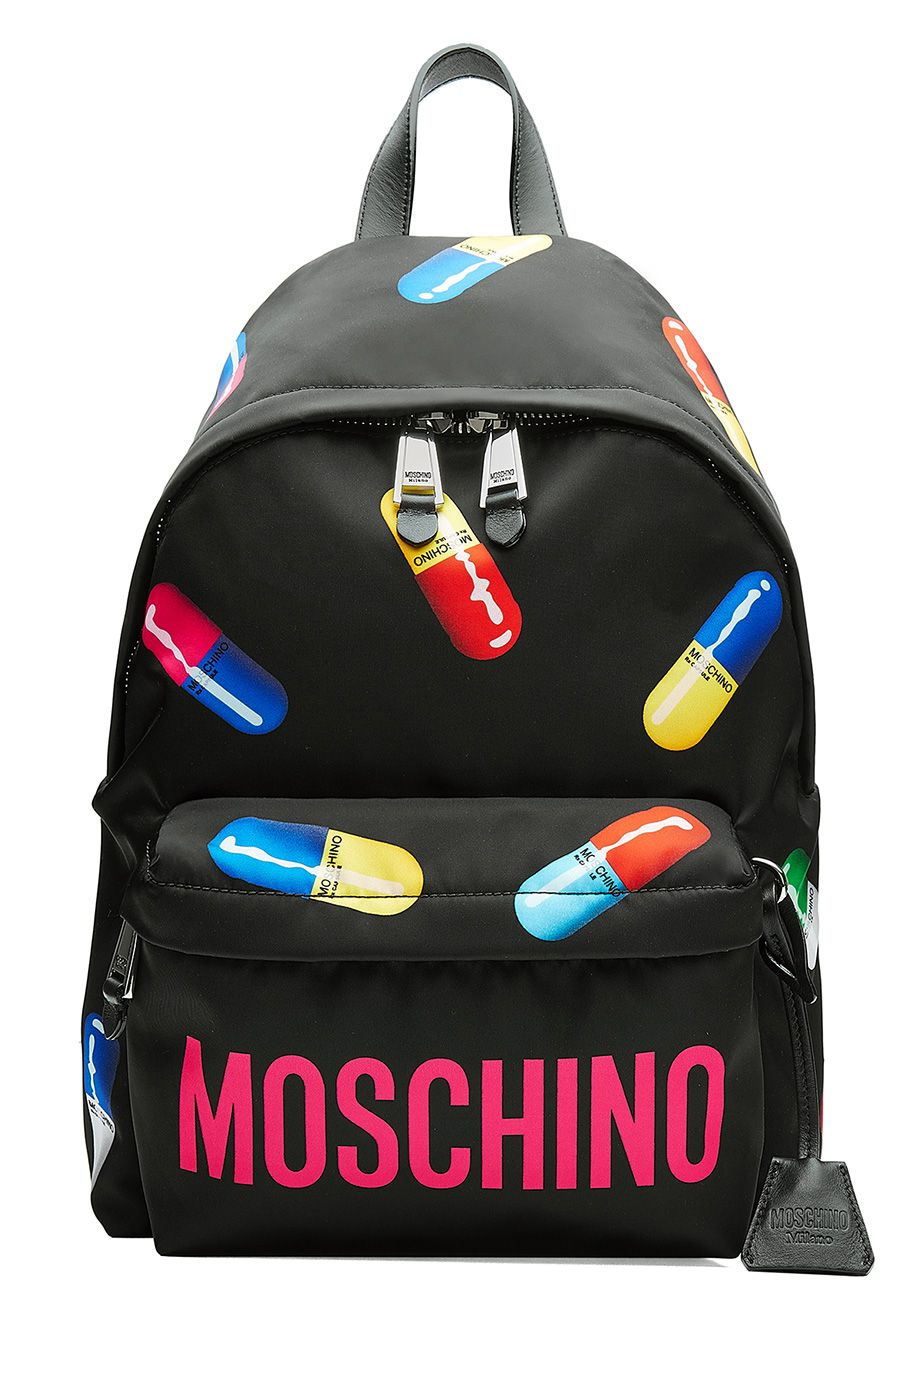 7e45d2bce1 MOSCHINO Printed Backpack. #moschino #bags #backpacks #cotton ...